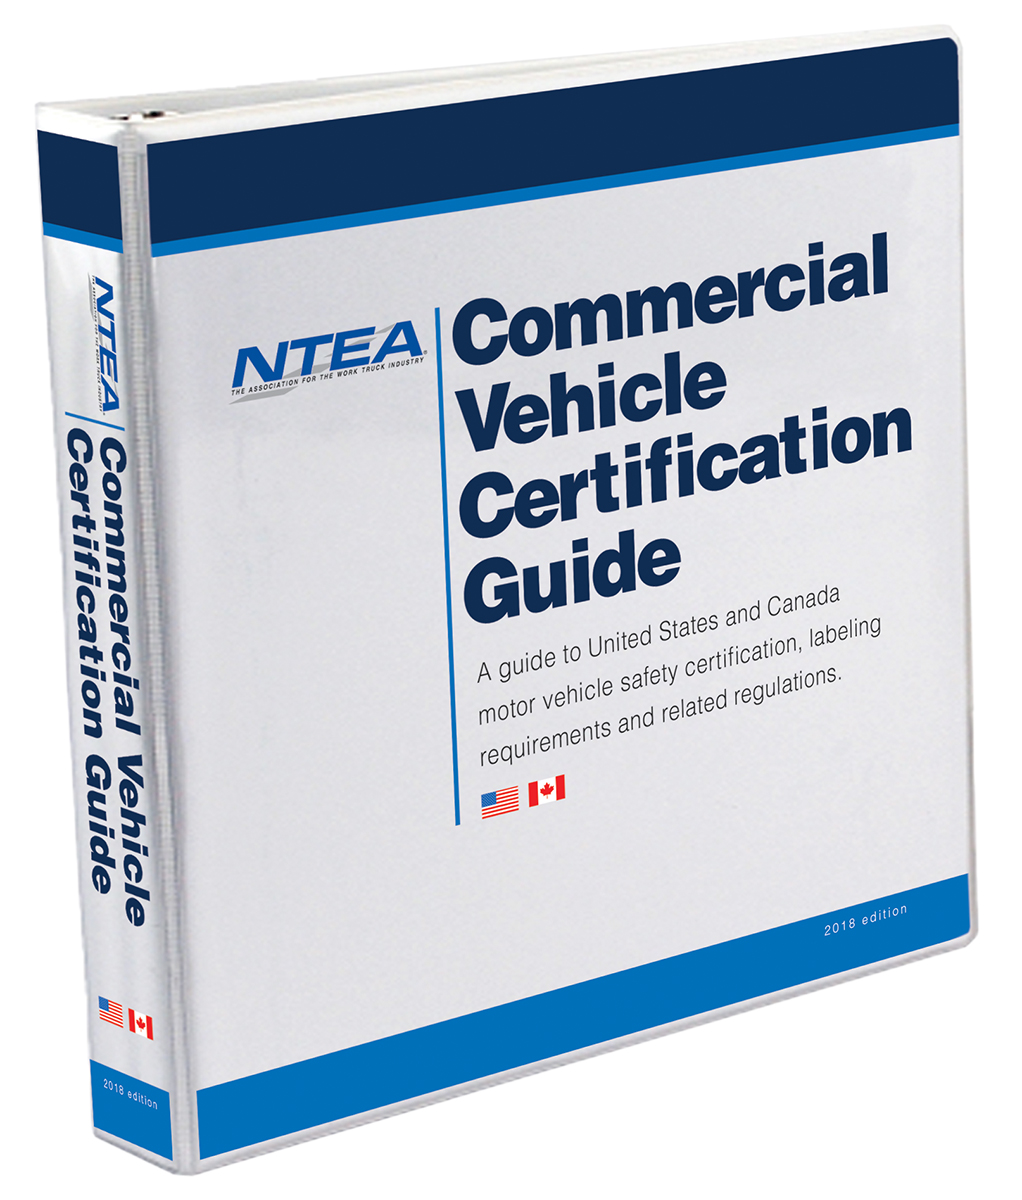 Commercial Vehicle Certification Guide